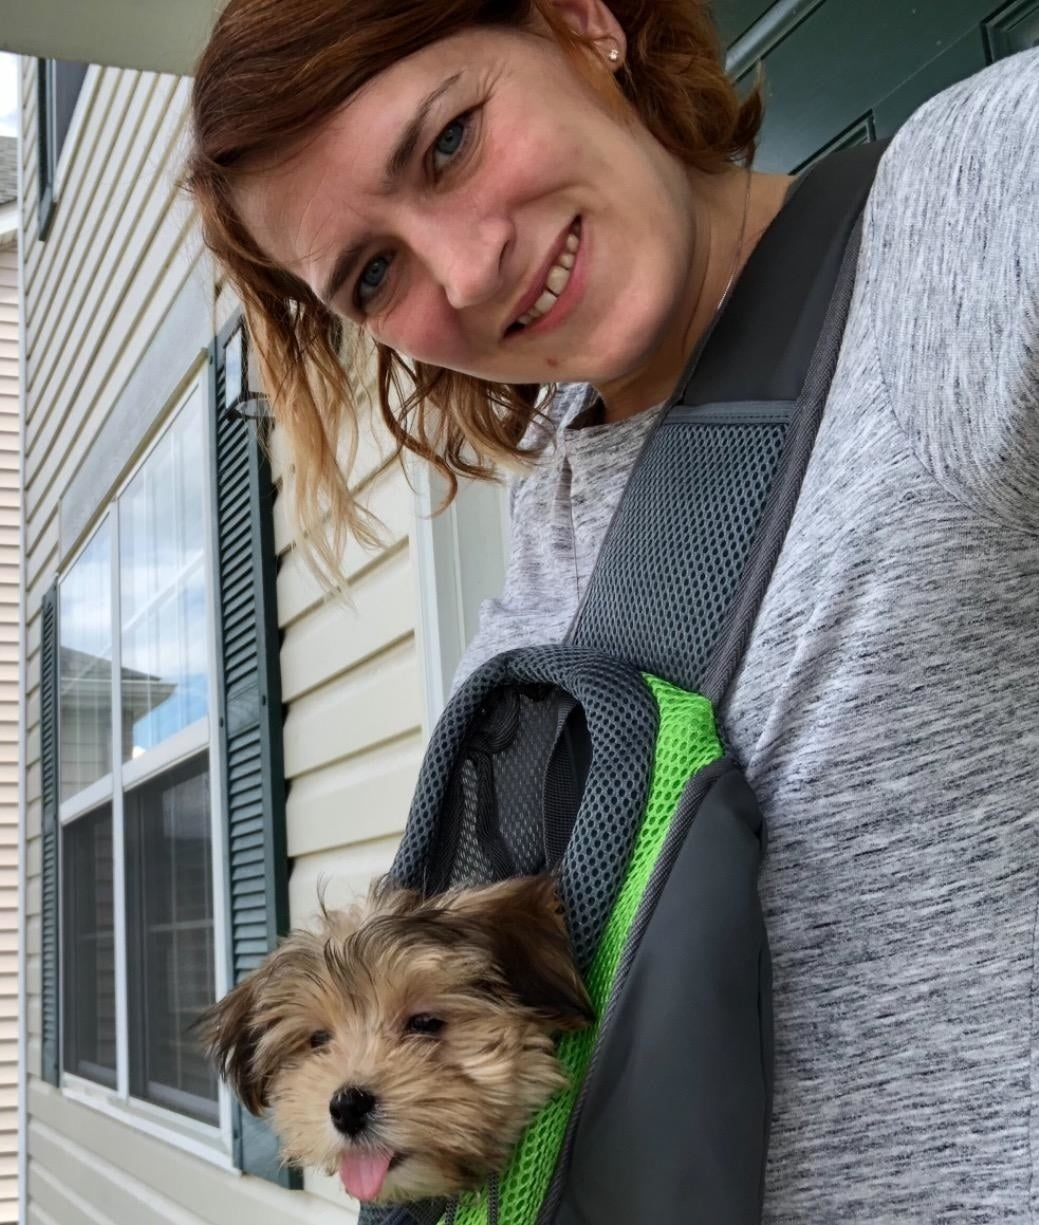 A person with a small dog in the carrier